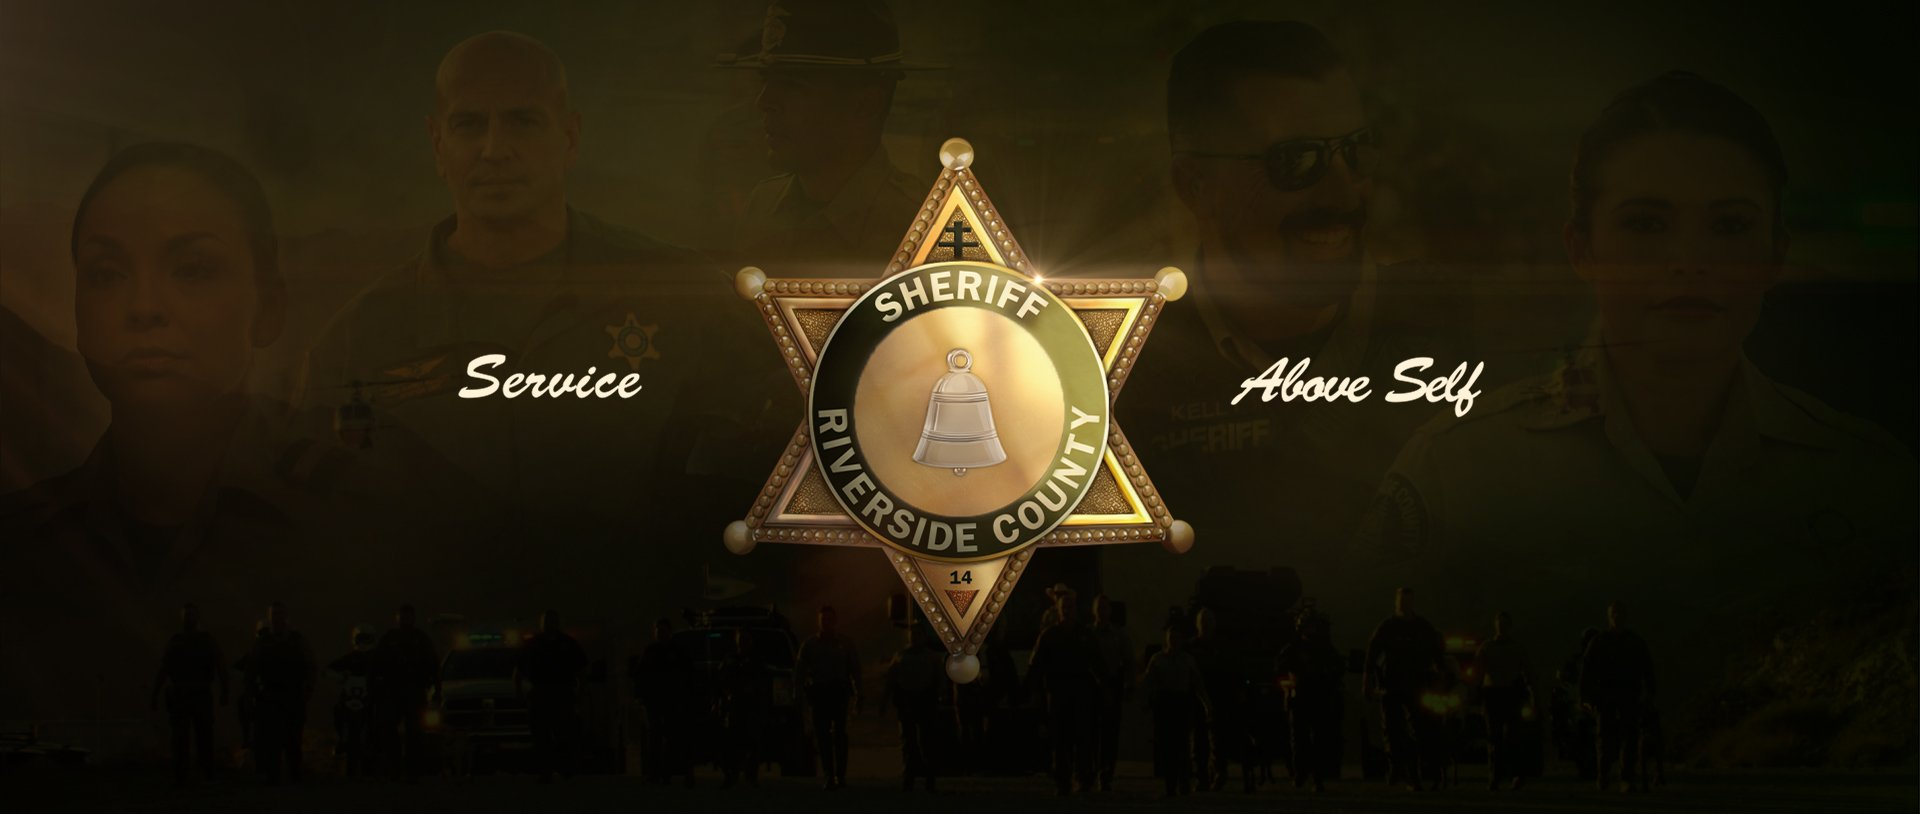 Service Above Self | Riverside County Sheriff's Department